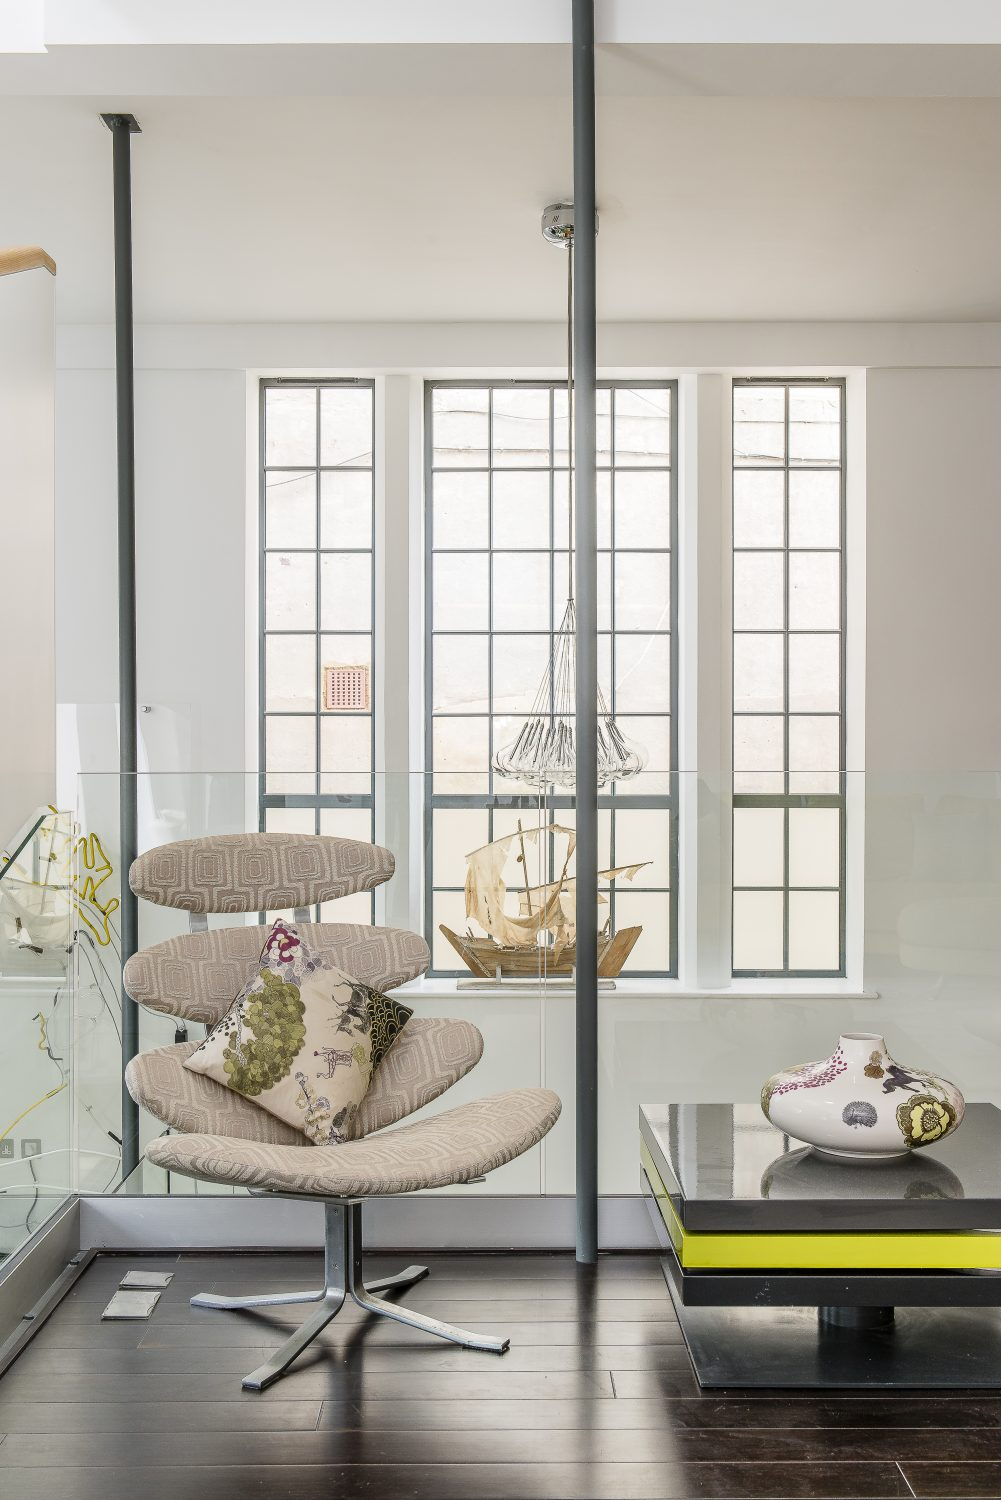 On the mezzanine balcony, the Perspex table is by Ligne Roset and Ian bought the model boat from The Conran Shop